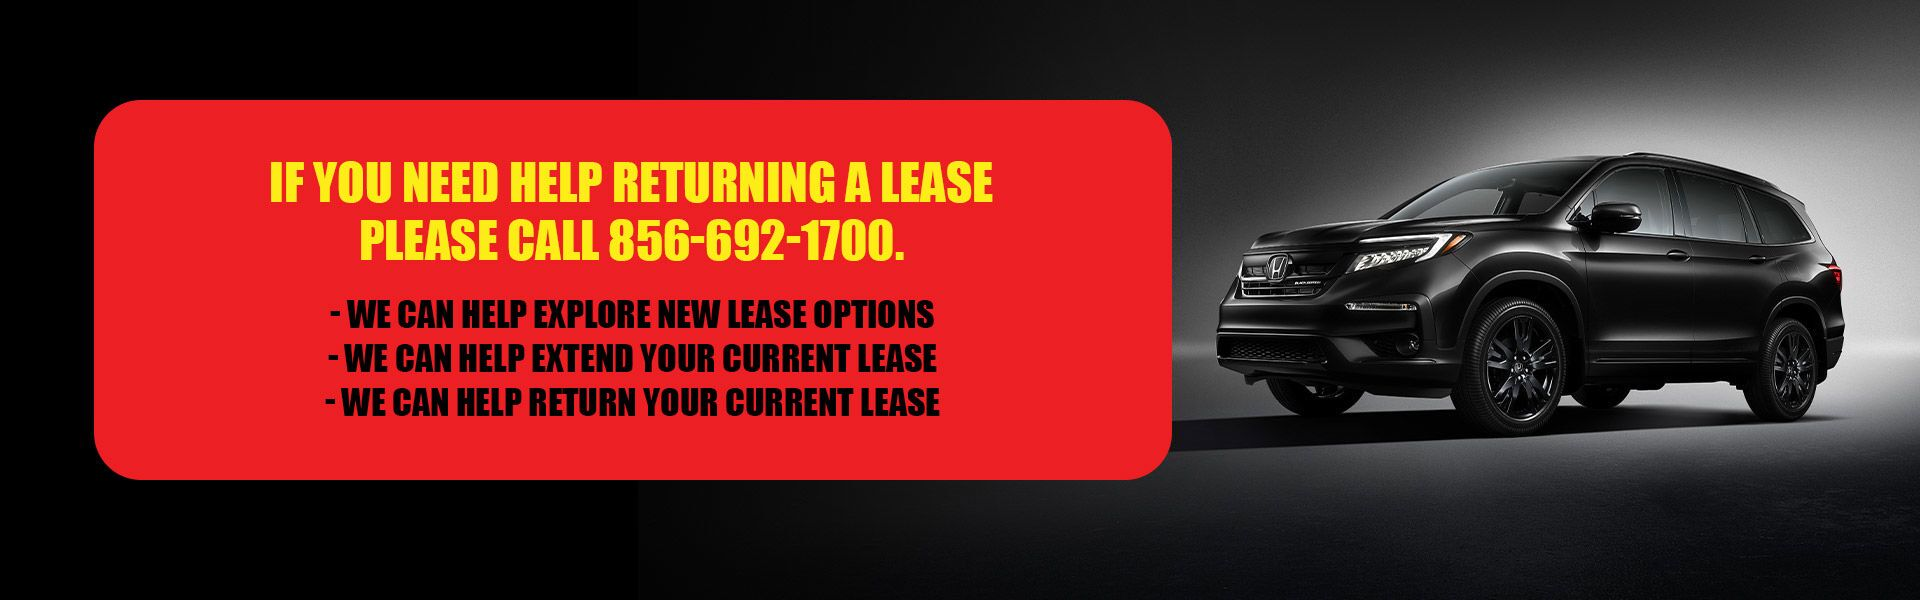 Returning a Lease